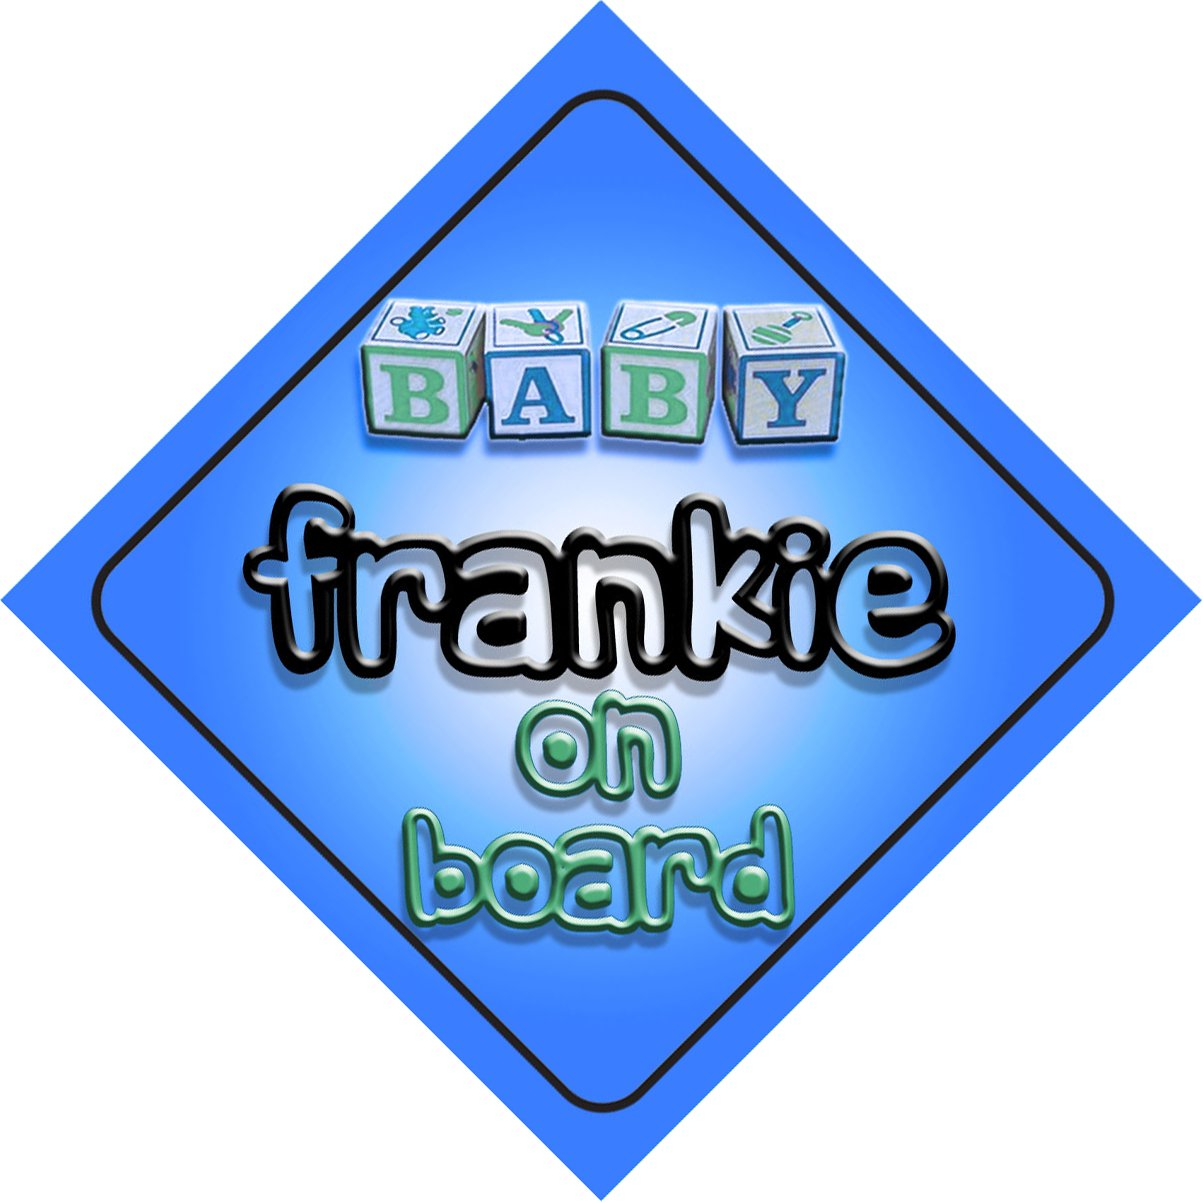 Baby Boy Frankie on board novelty car sign gift present for new child newborn baby